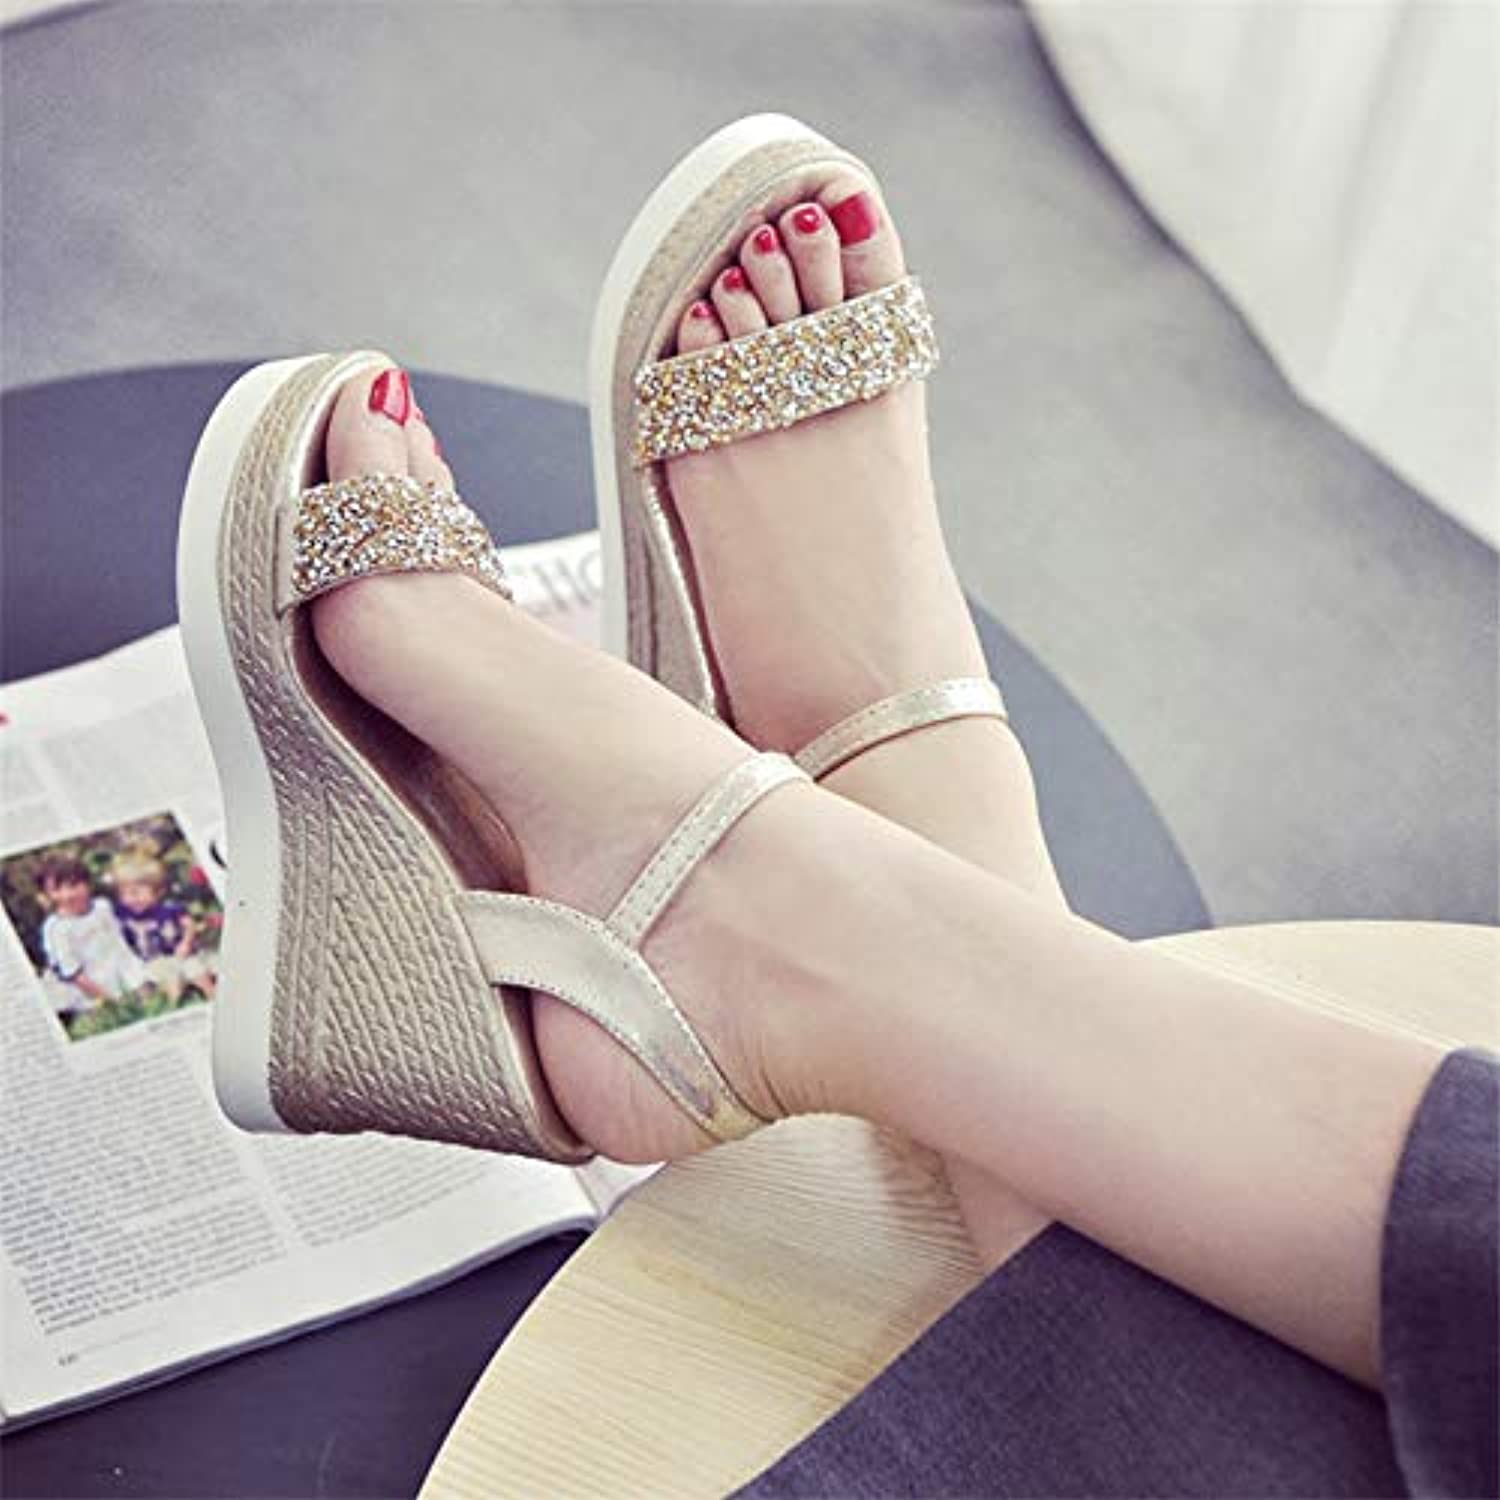 High Heels Sandals Women Shinning Glitter Silver gold Platform Wedges Summer Ladies Open Toe Casual shoes Pumps hot,gold,US7.5